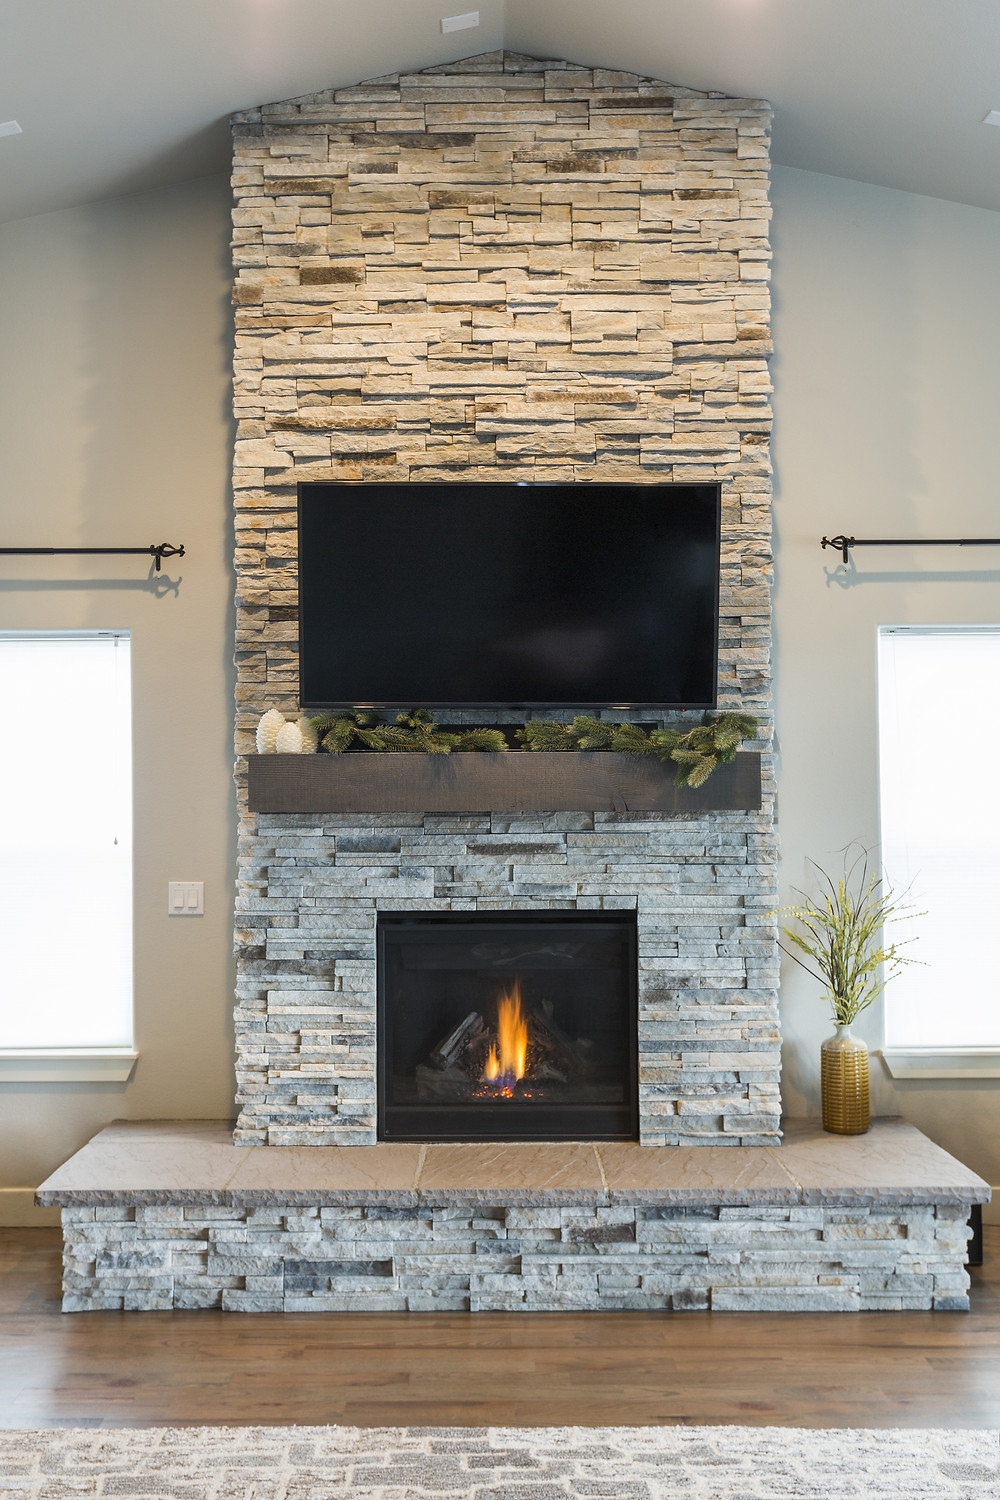 Integrity Woodworking, Stone Fireplace, Rustic Rock, Earthy Feel, Upgrade your fireplace